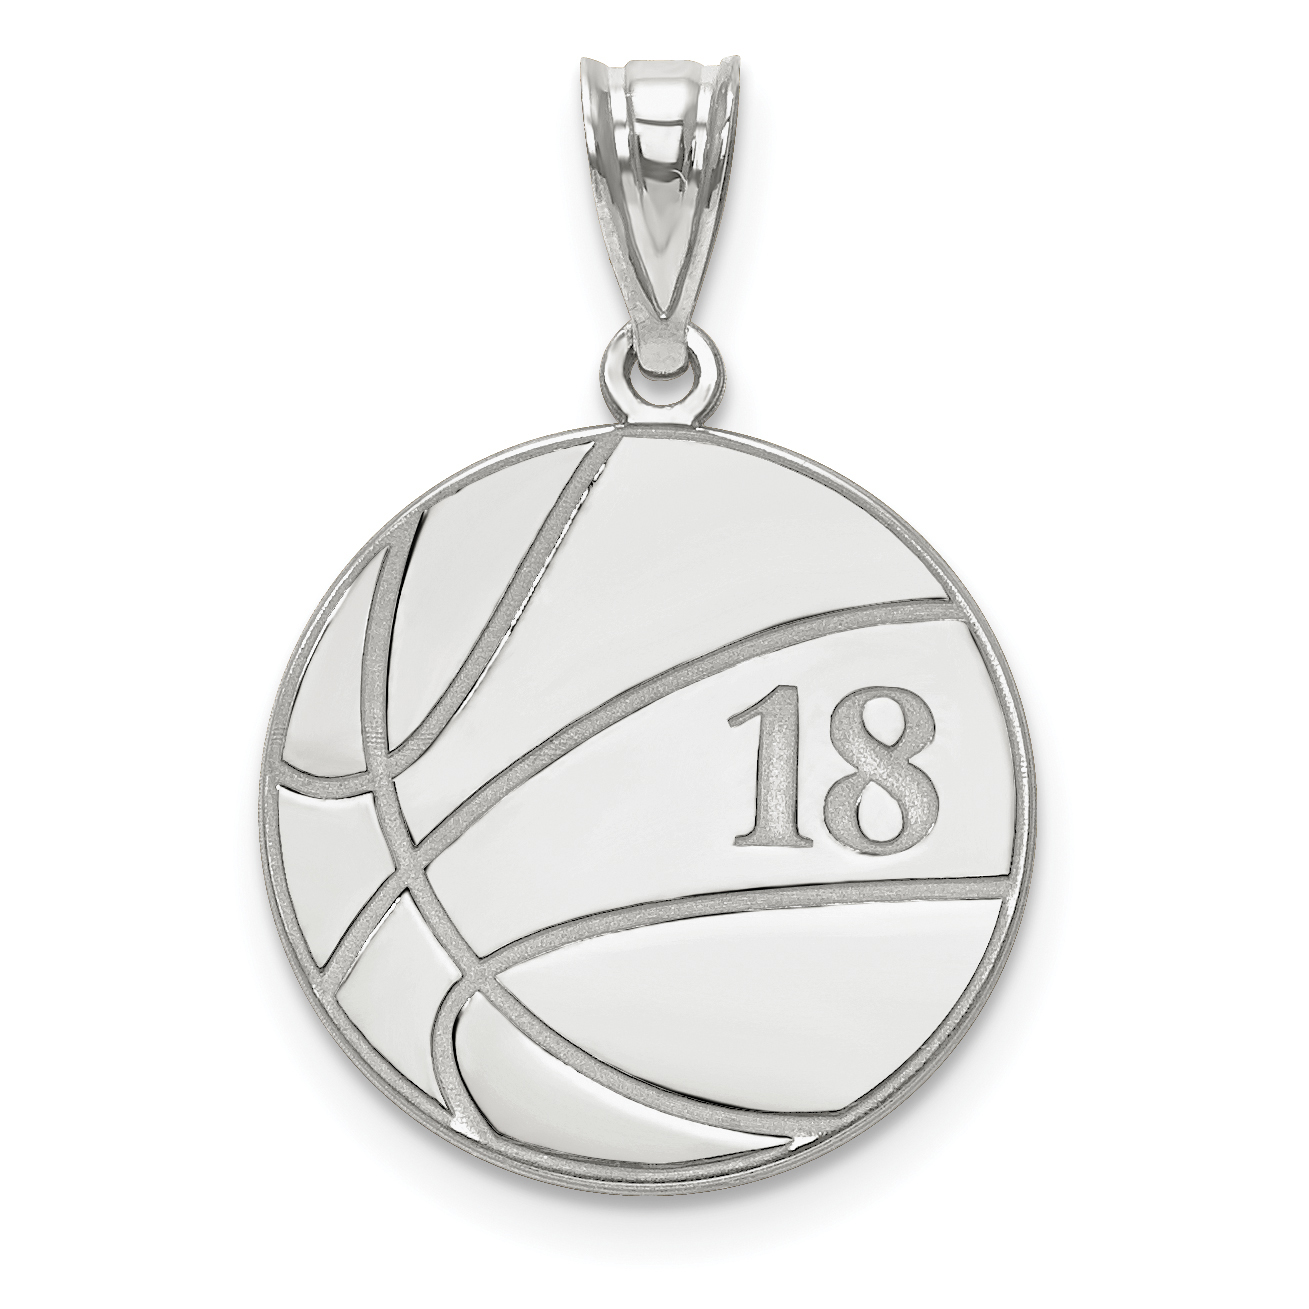 Rnd Polish Front//Back Disc Pendant Charm 19mm x 26mm Jewel Tie Sterling Silver Rhod-plated Eng